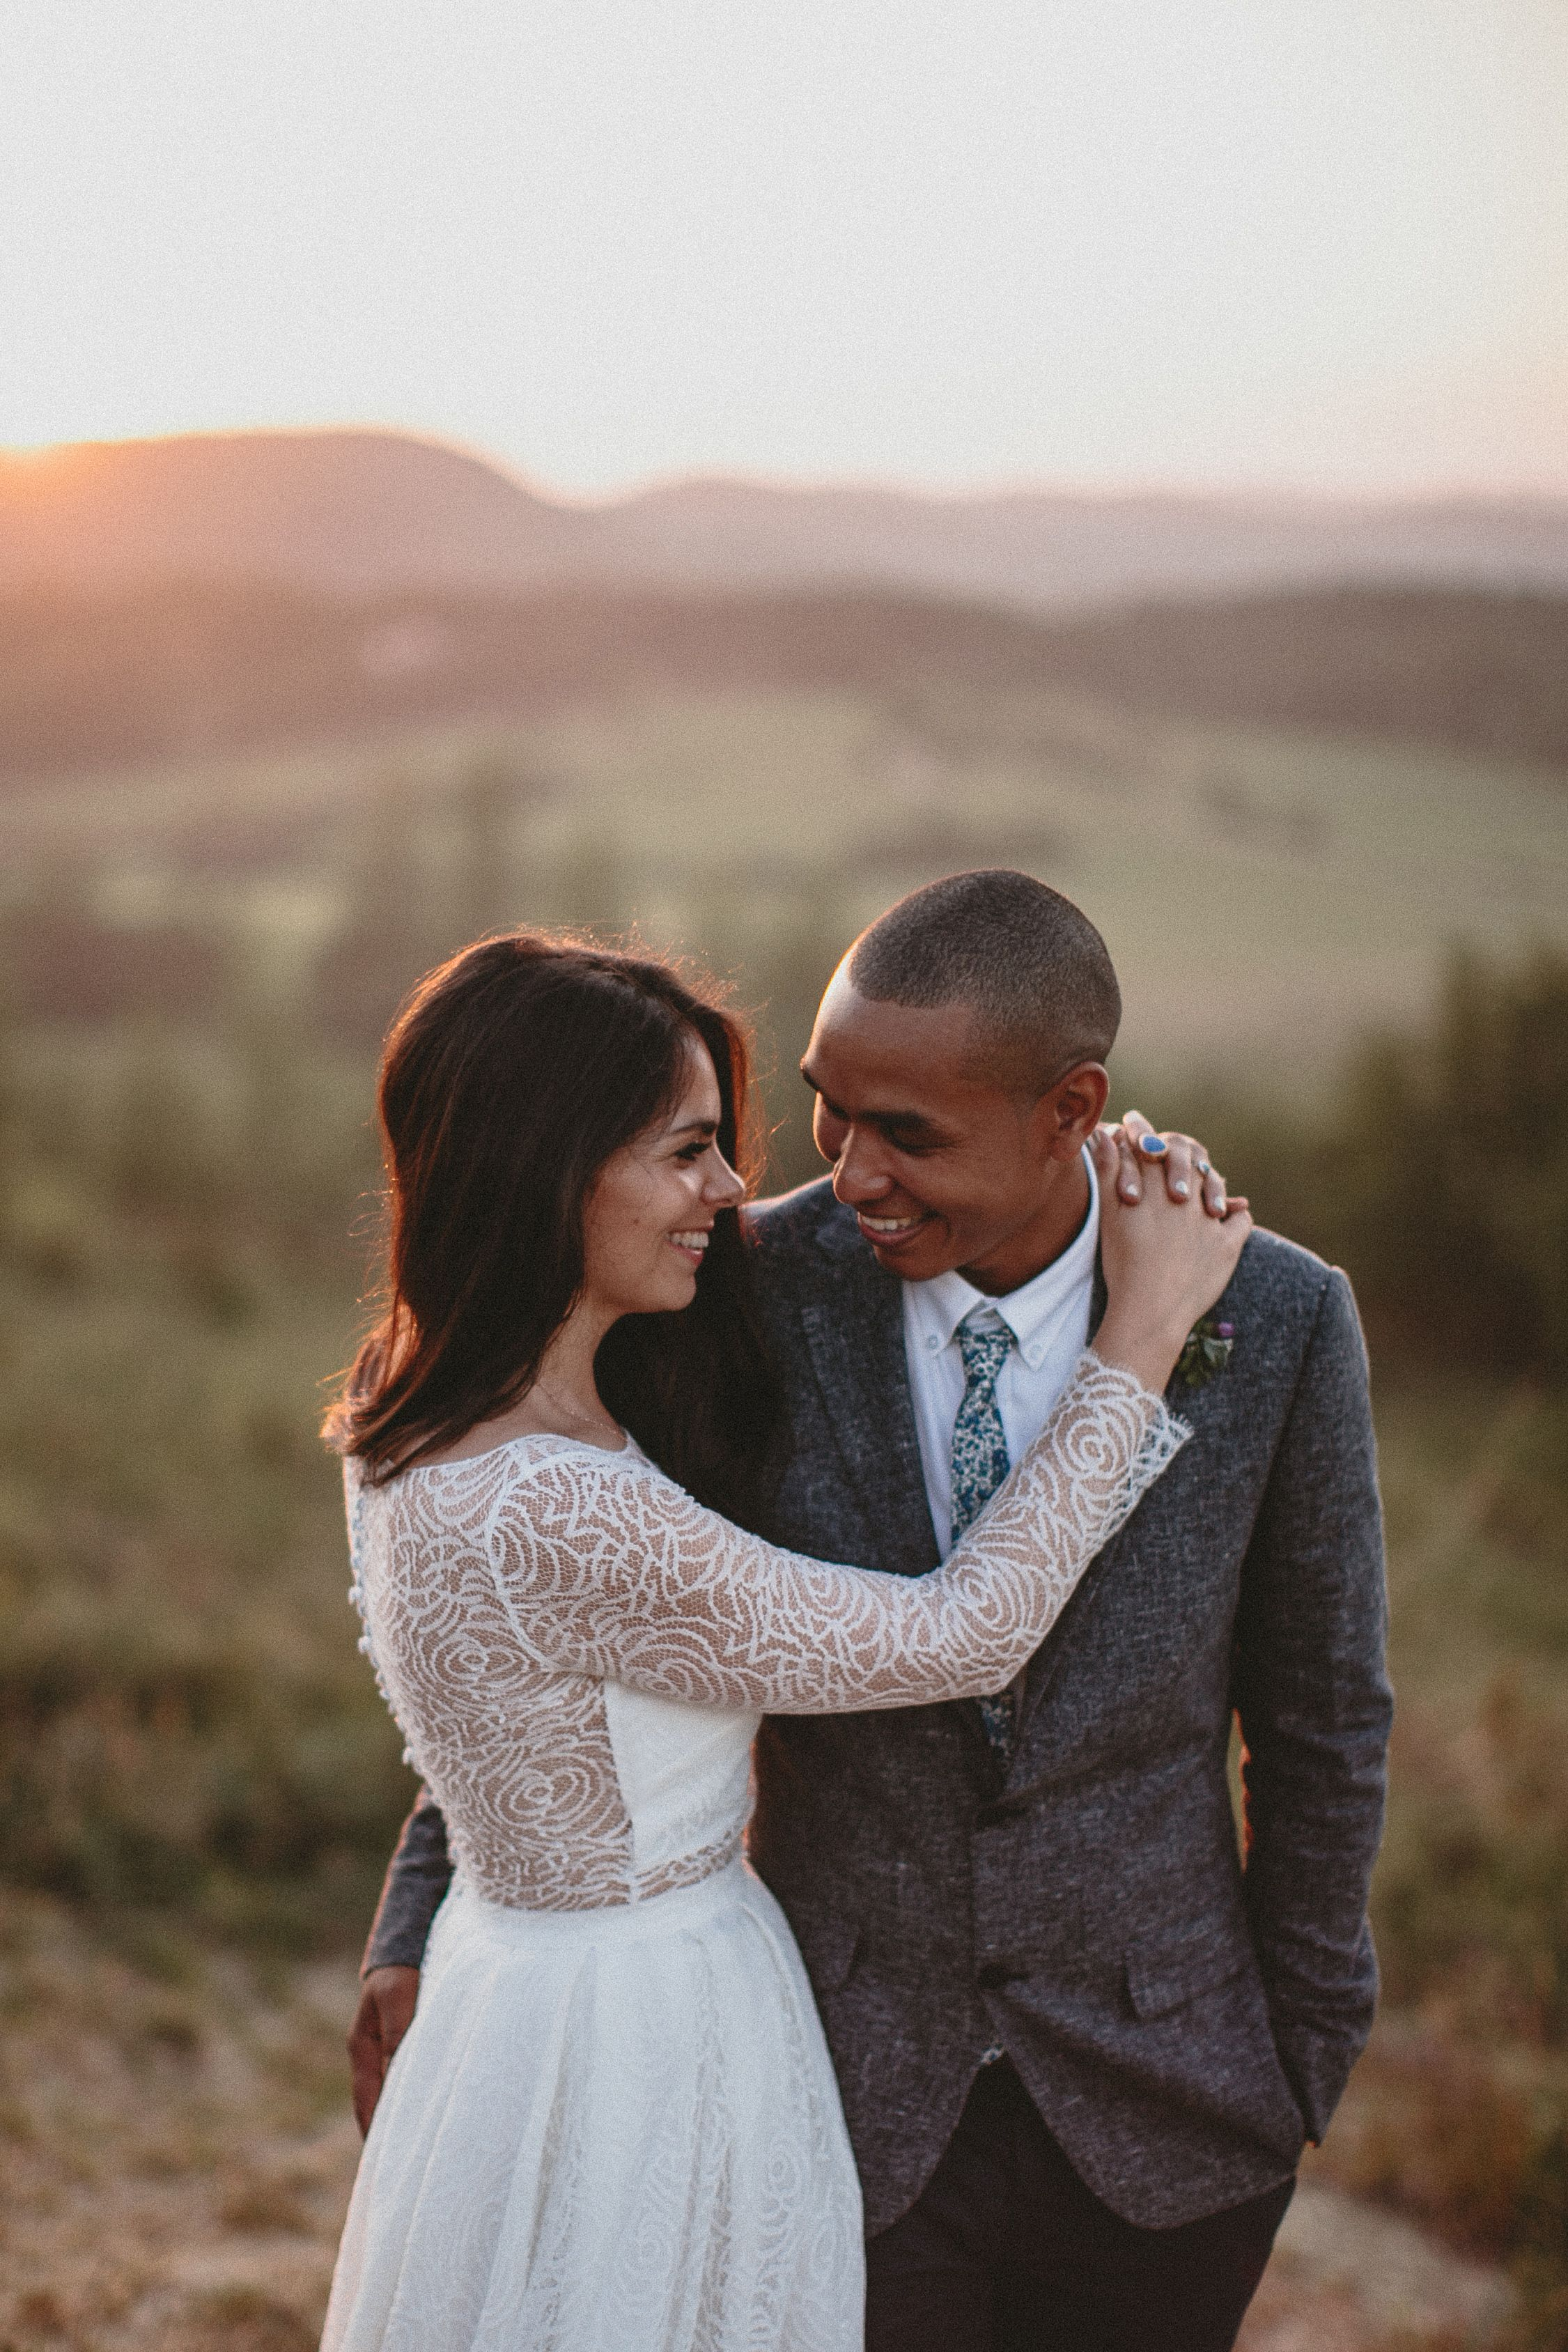 Wedding Dress Dry Cleaning Is A Laborious Process But With European Dry Cleaners You Can Trust Us To Give Wedding Magazine Wedding Gowns Vintage Lgbtq Wedding